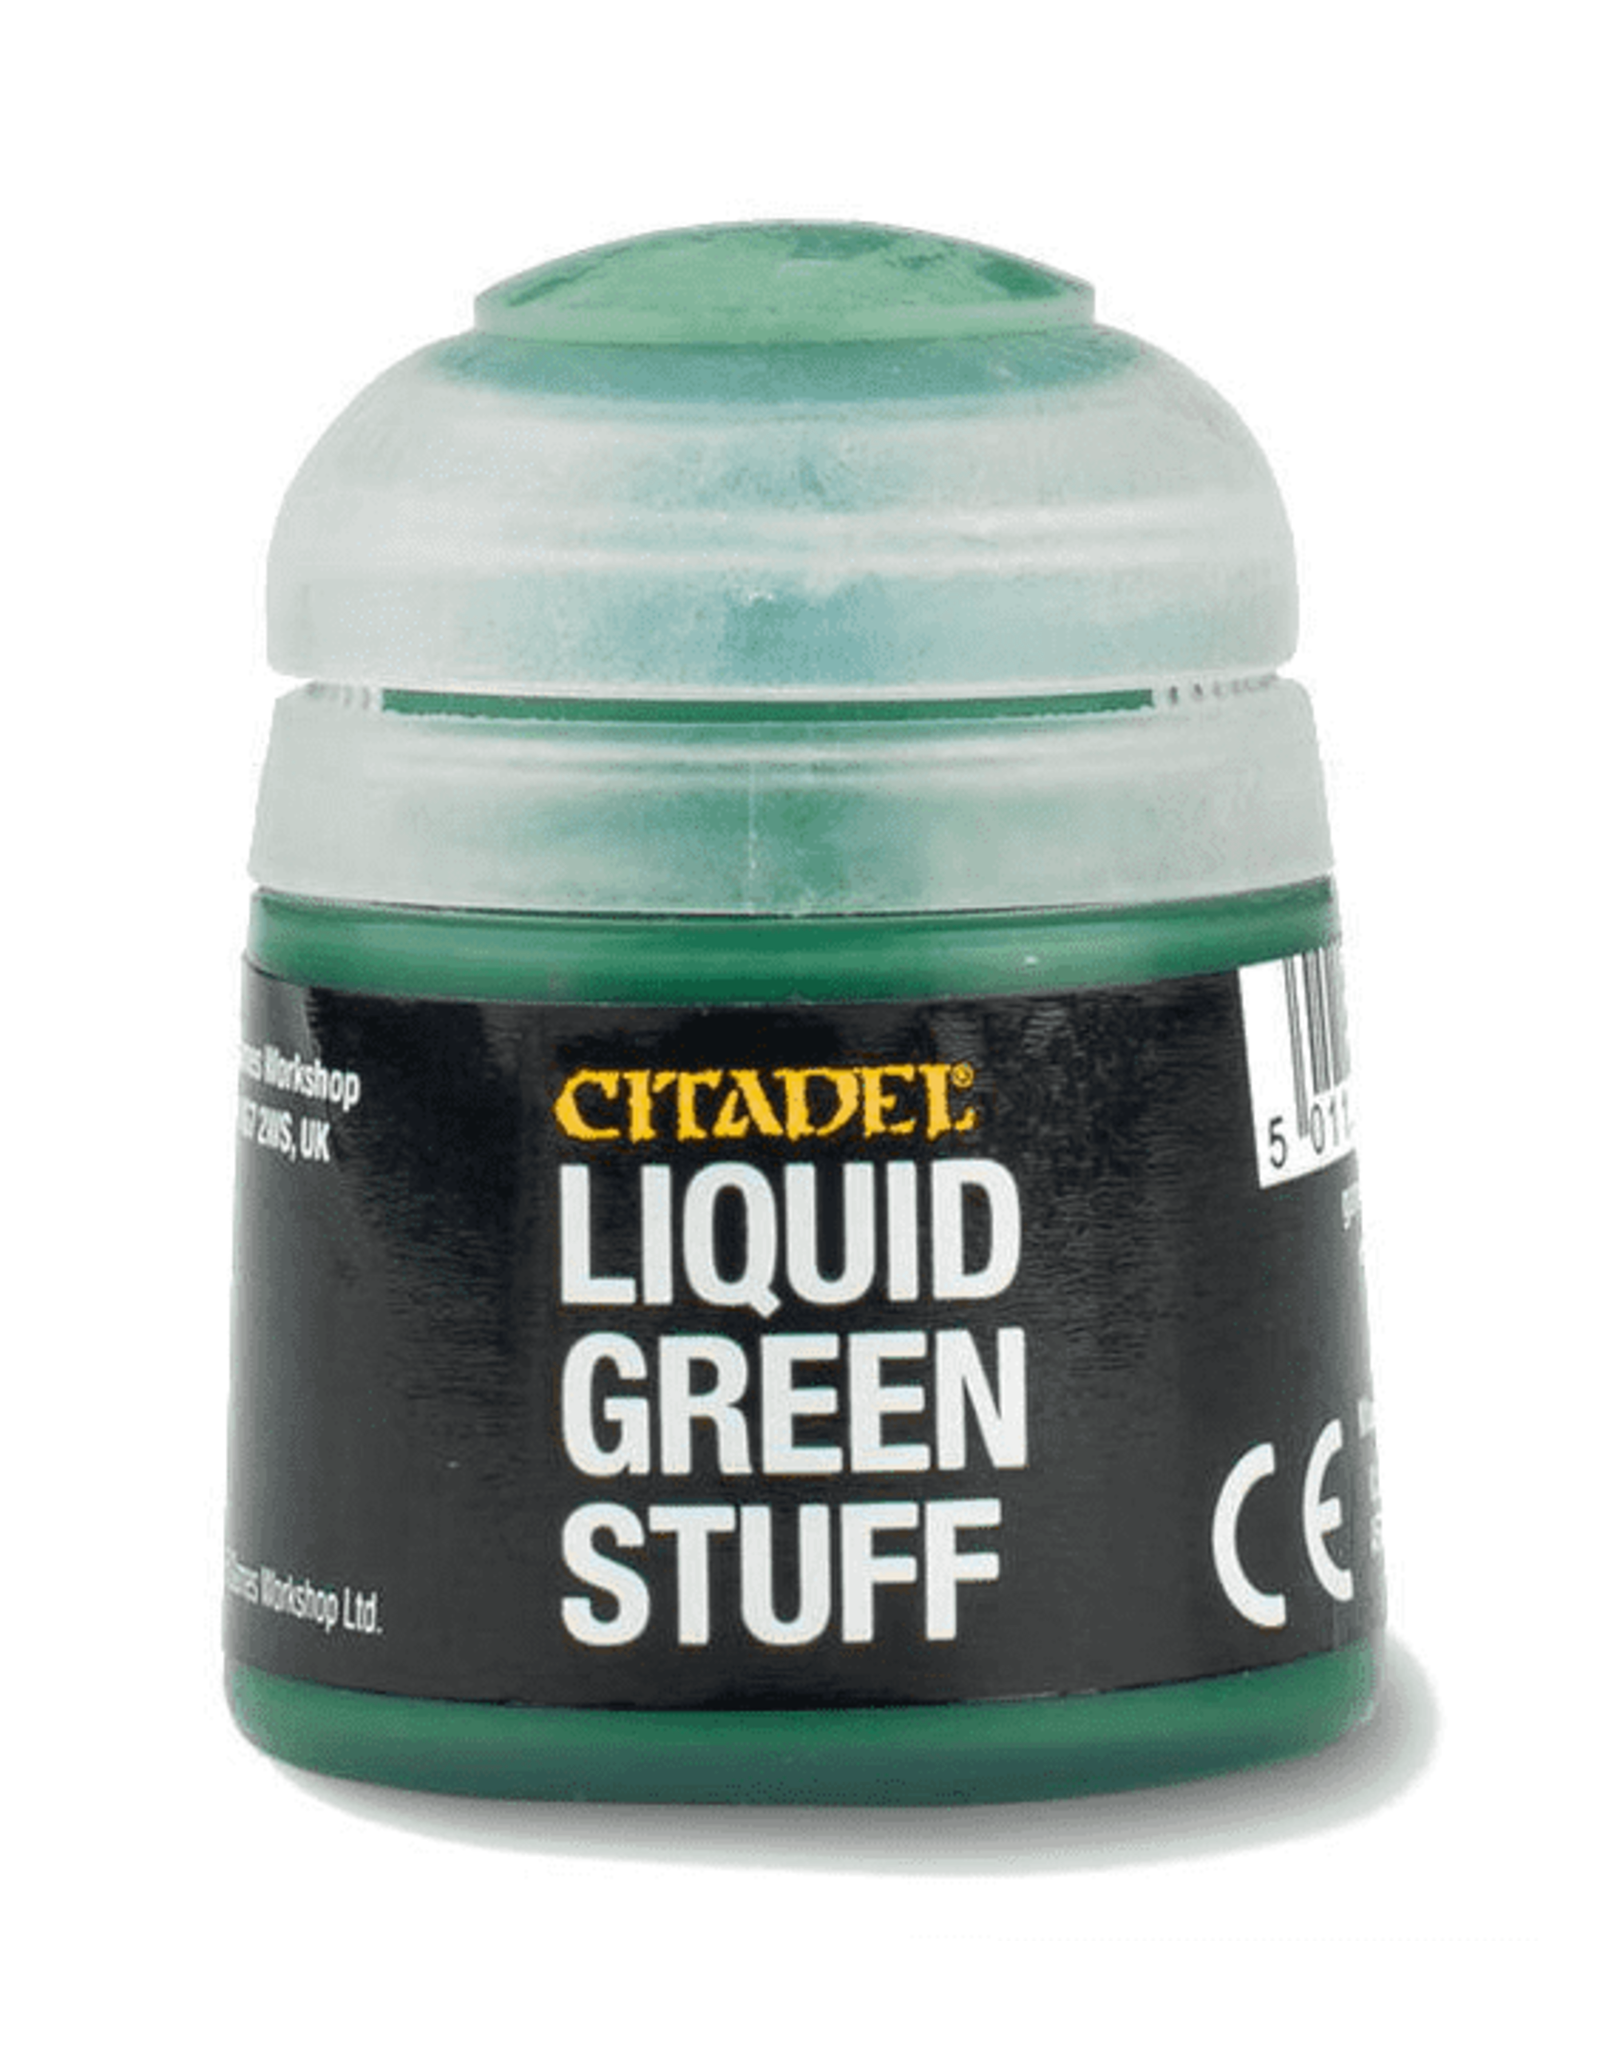 Citadel Citadel: Liquid Green Stuff